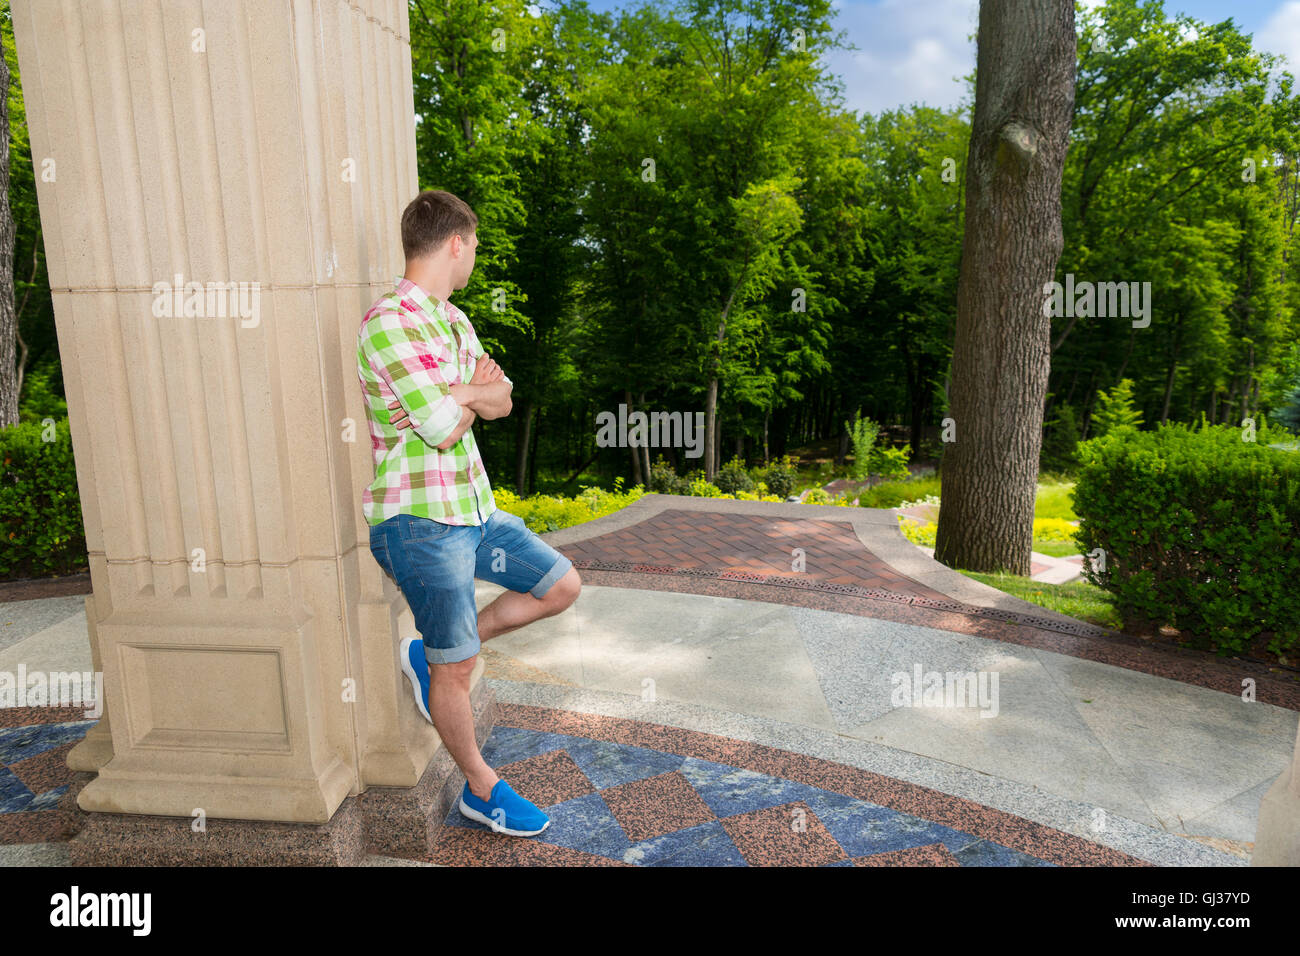 Side view on contemplative young adult man standing near stone wall outside facing trees in park or yard - Stock Image